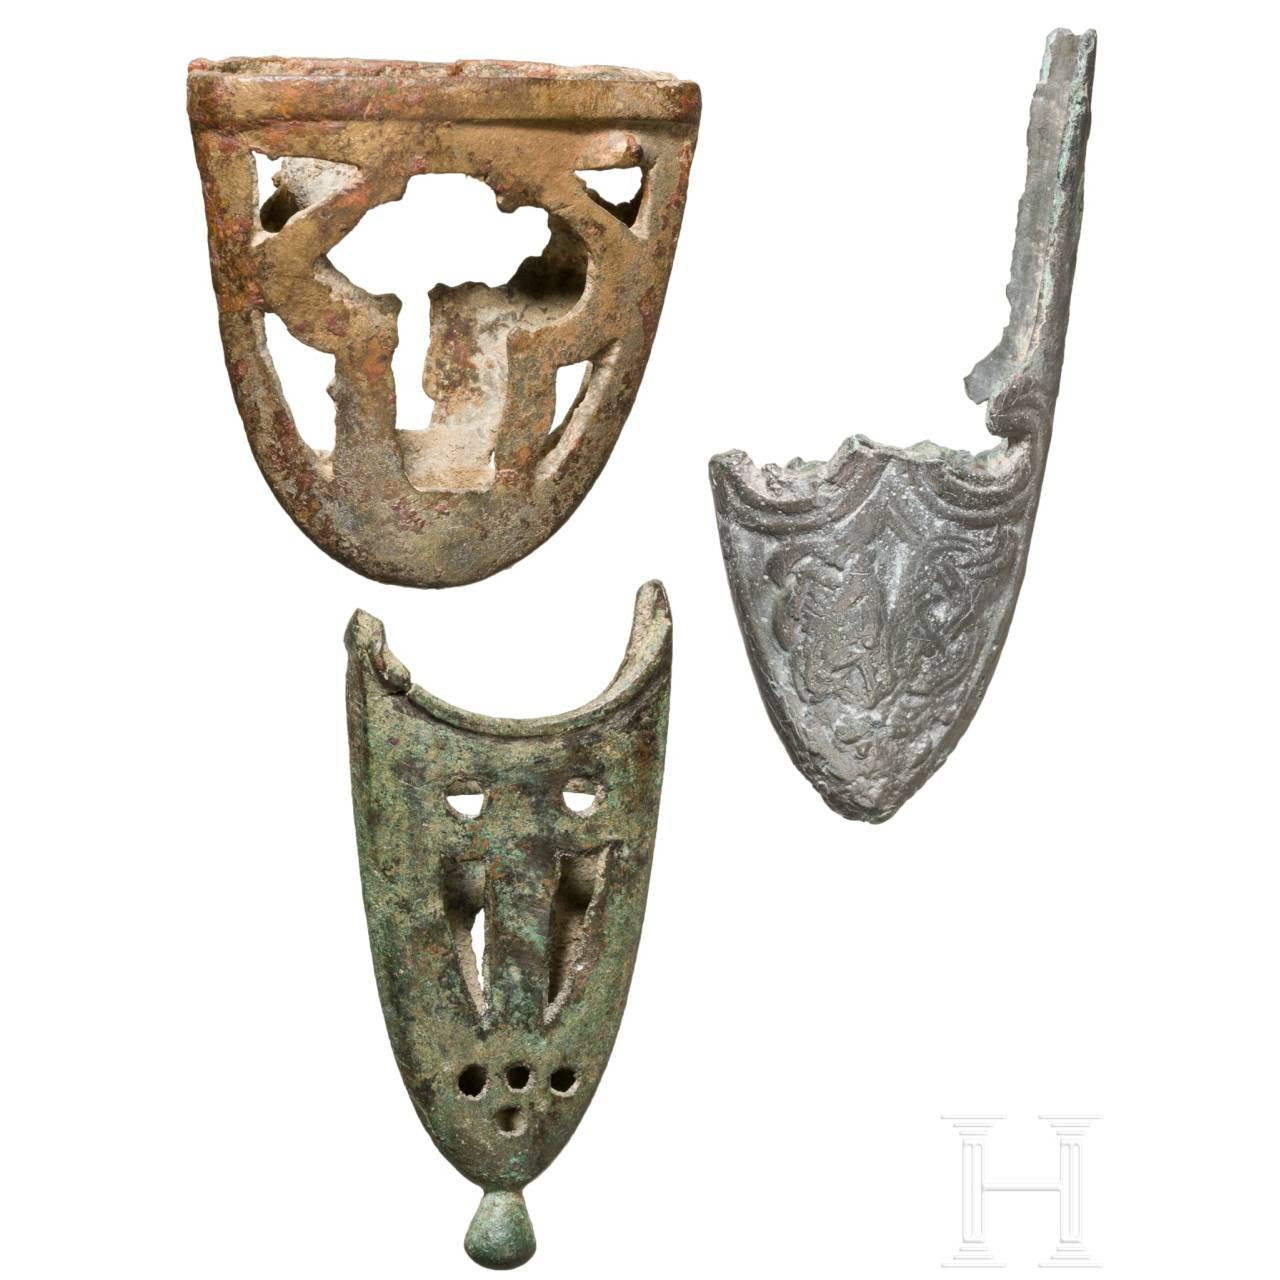 Three Northern and Central European chapes, 10th century